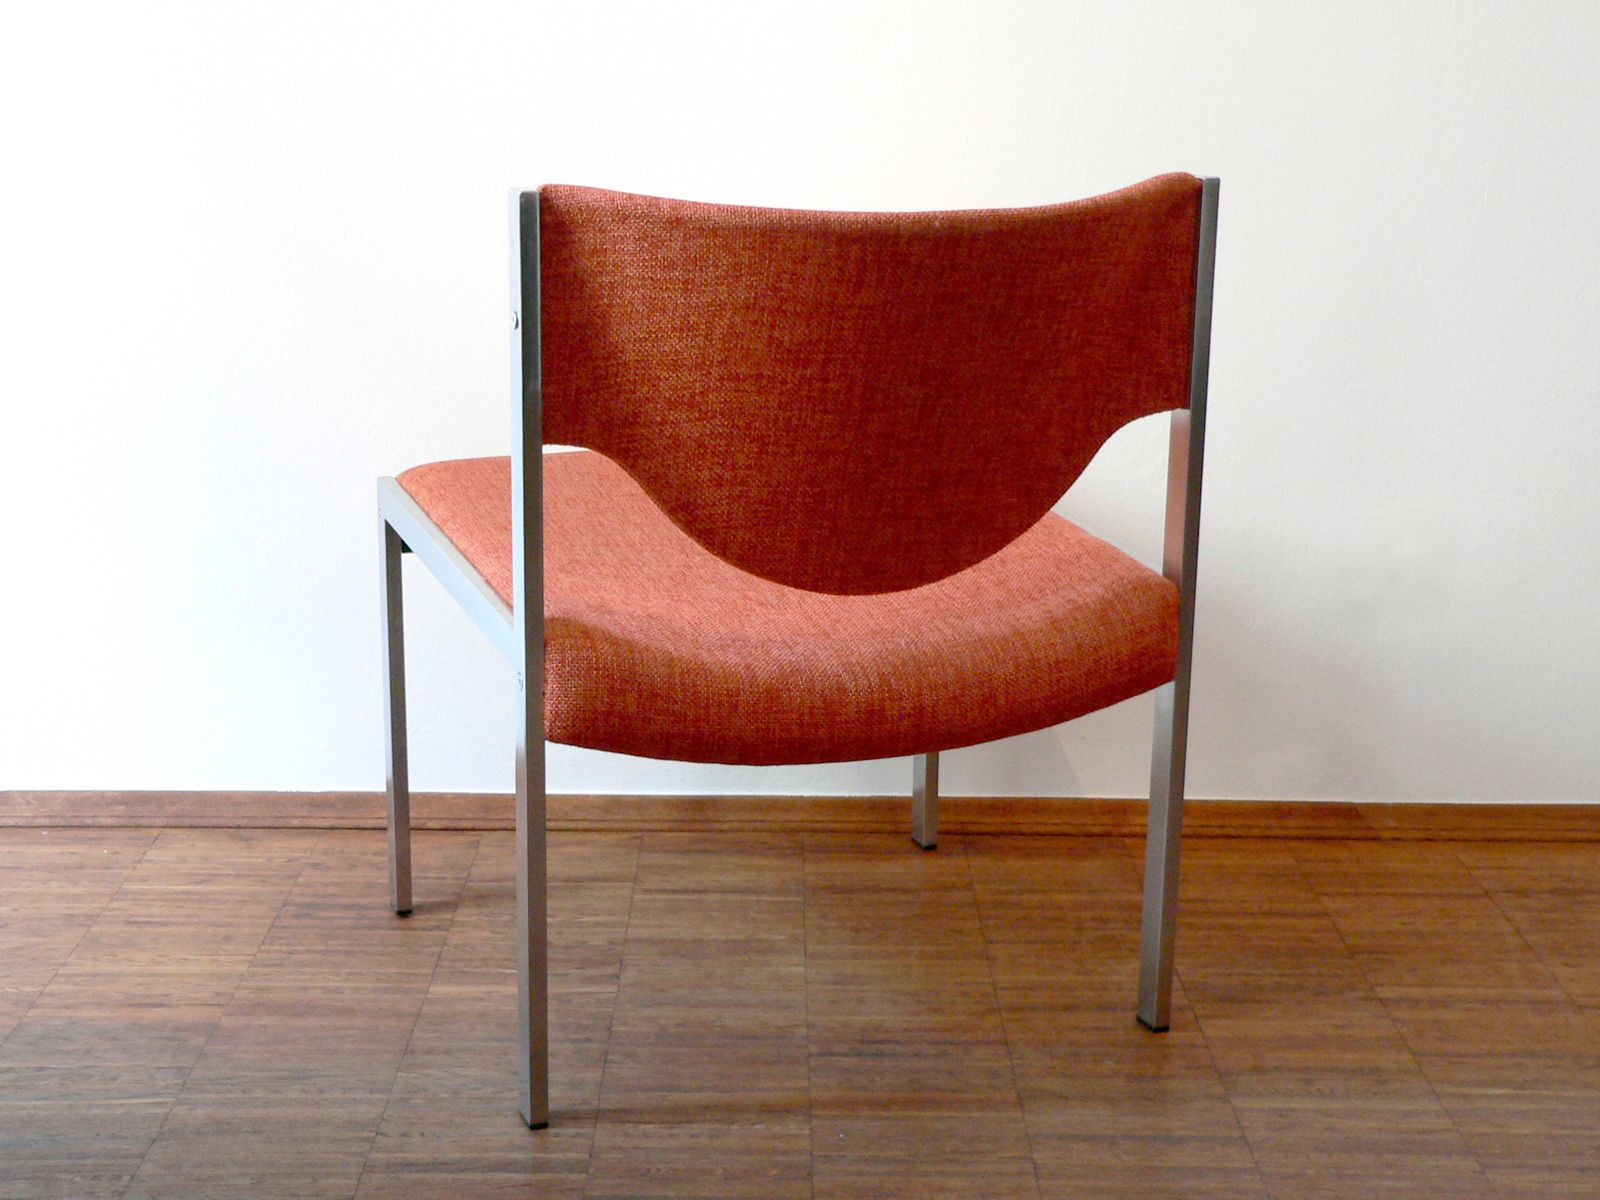 Vintage Lounge Chair from Lübke 1970s for sale at Pamono